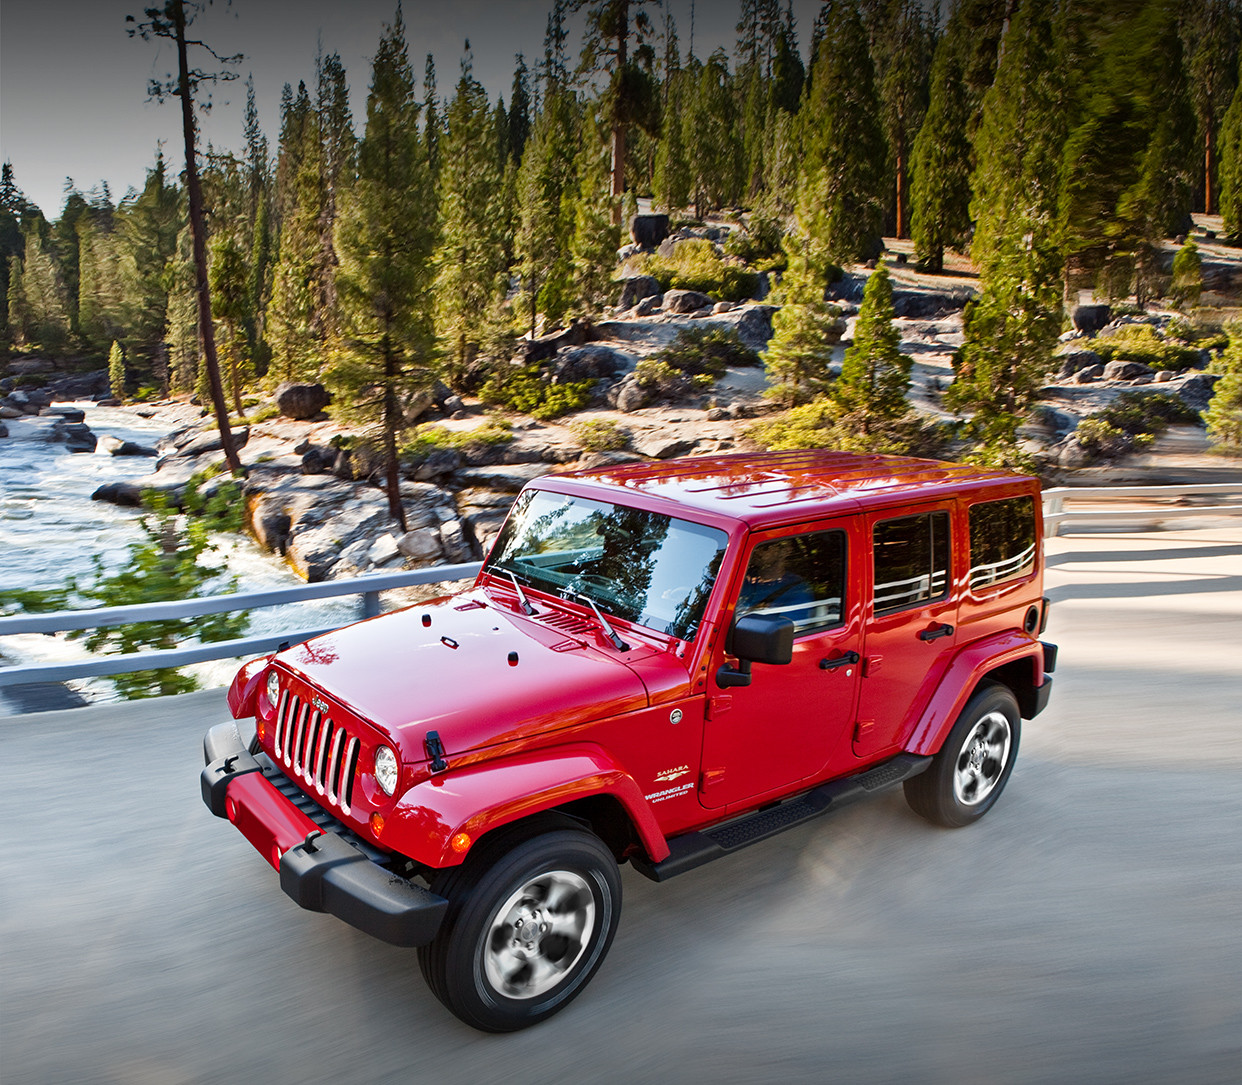 Jeep Wrangler 2018 – orange